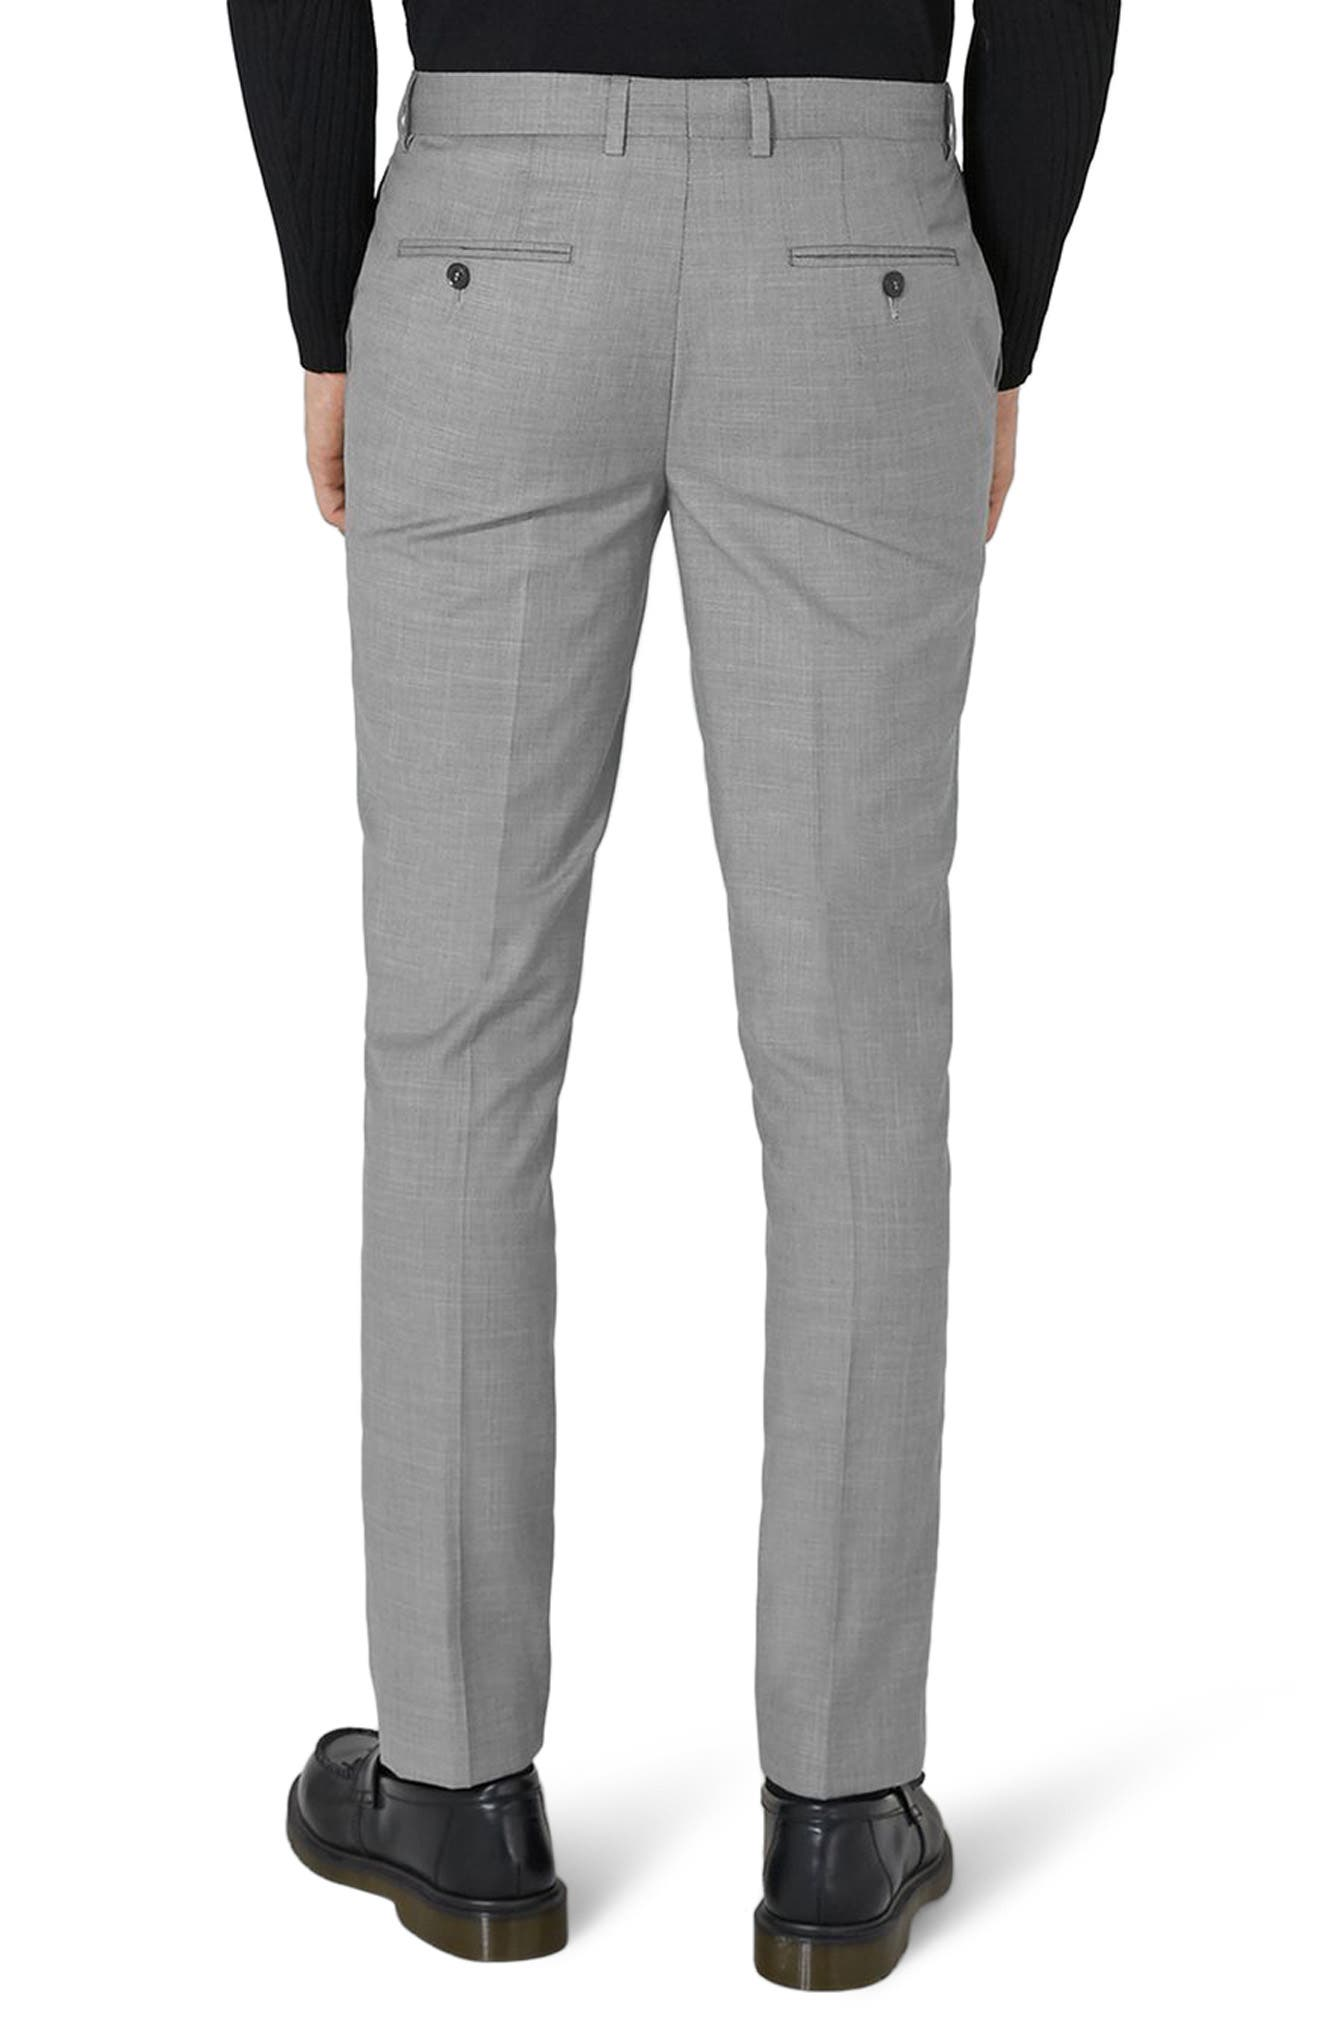 Como Skinny Fit Grey Suit Pants,                             Alternate thumbnail 2, color,                             GREY